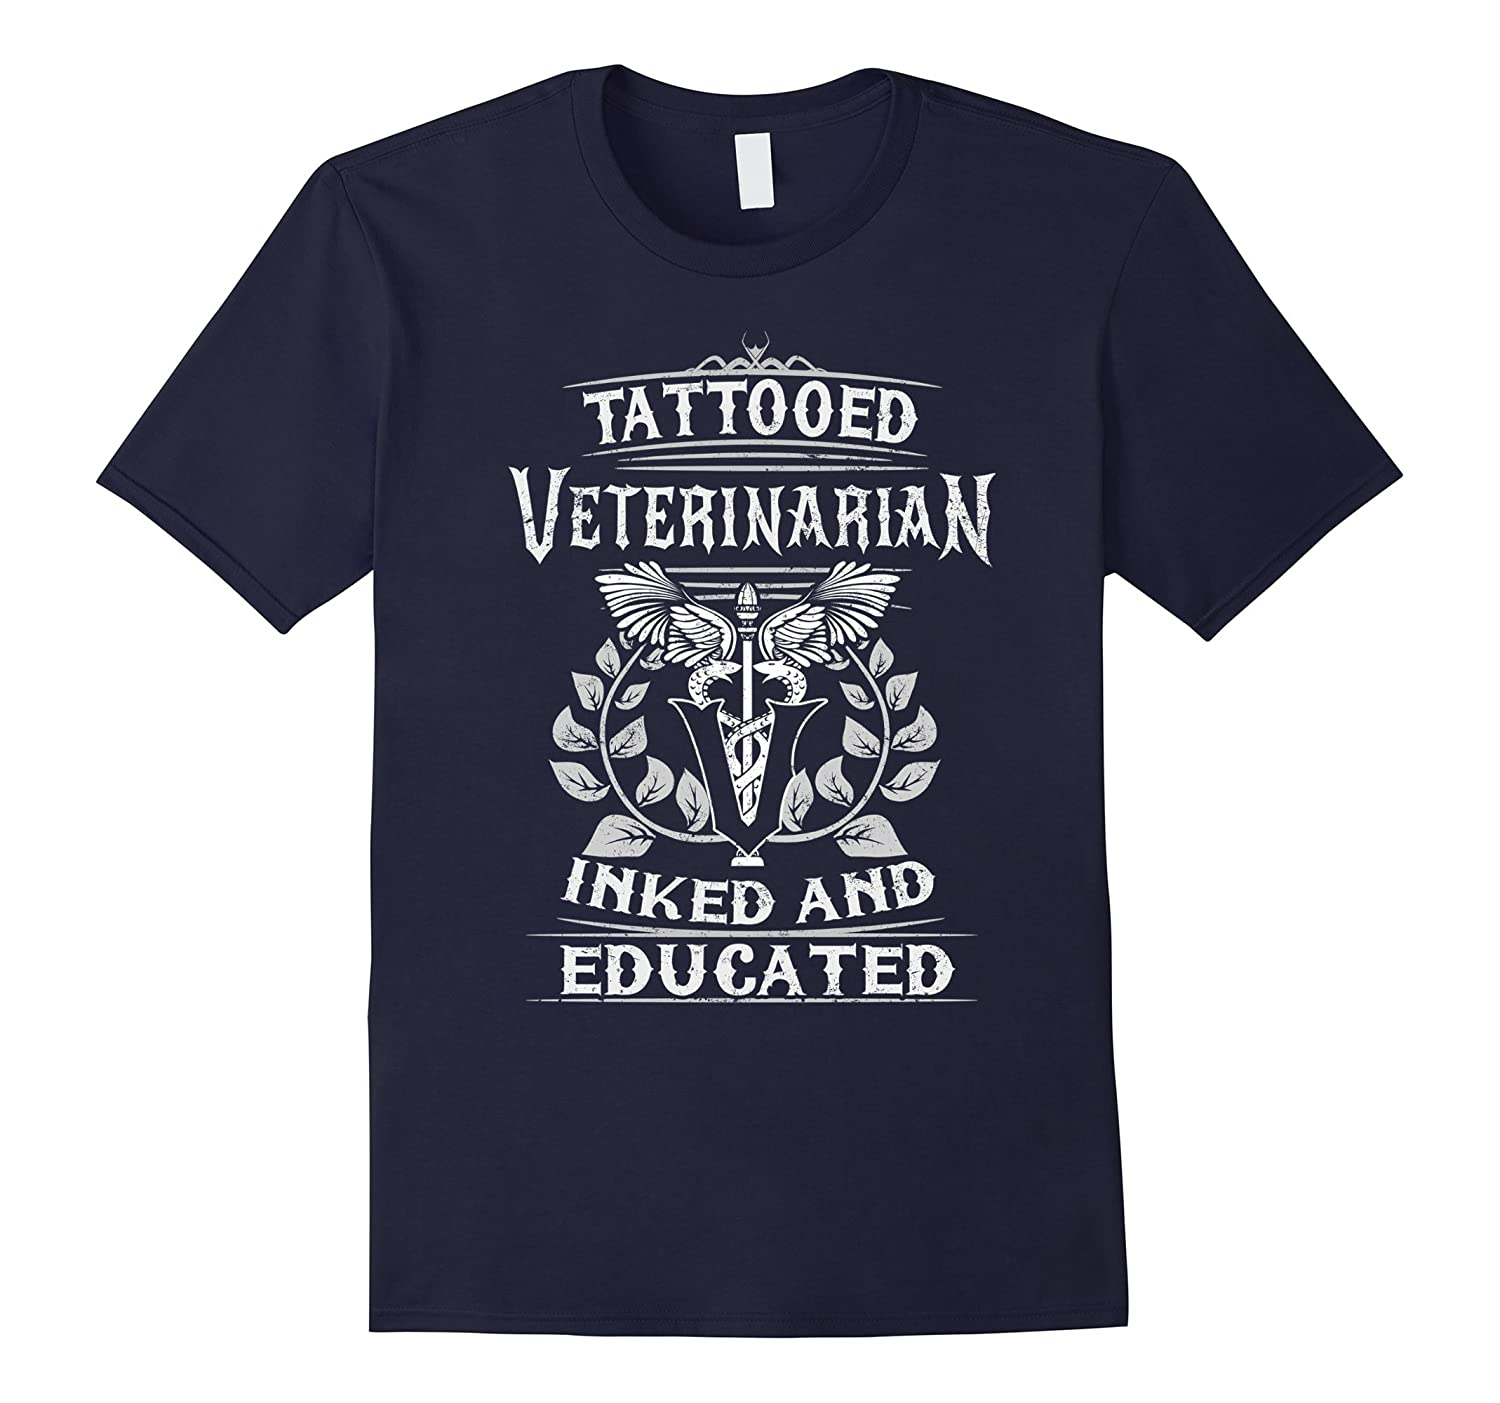 Tattooed Veterinarian Inked And Educated T-shirt-TH